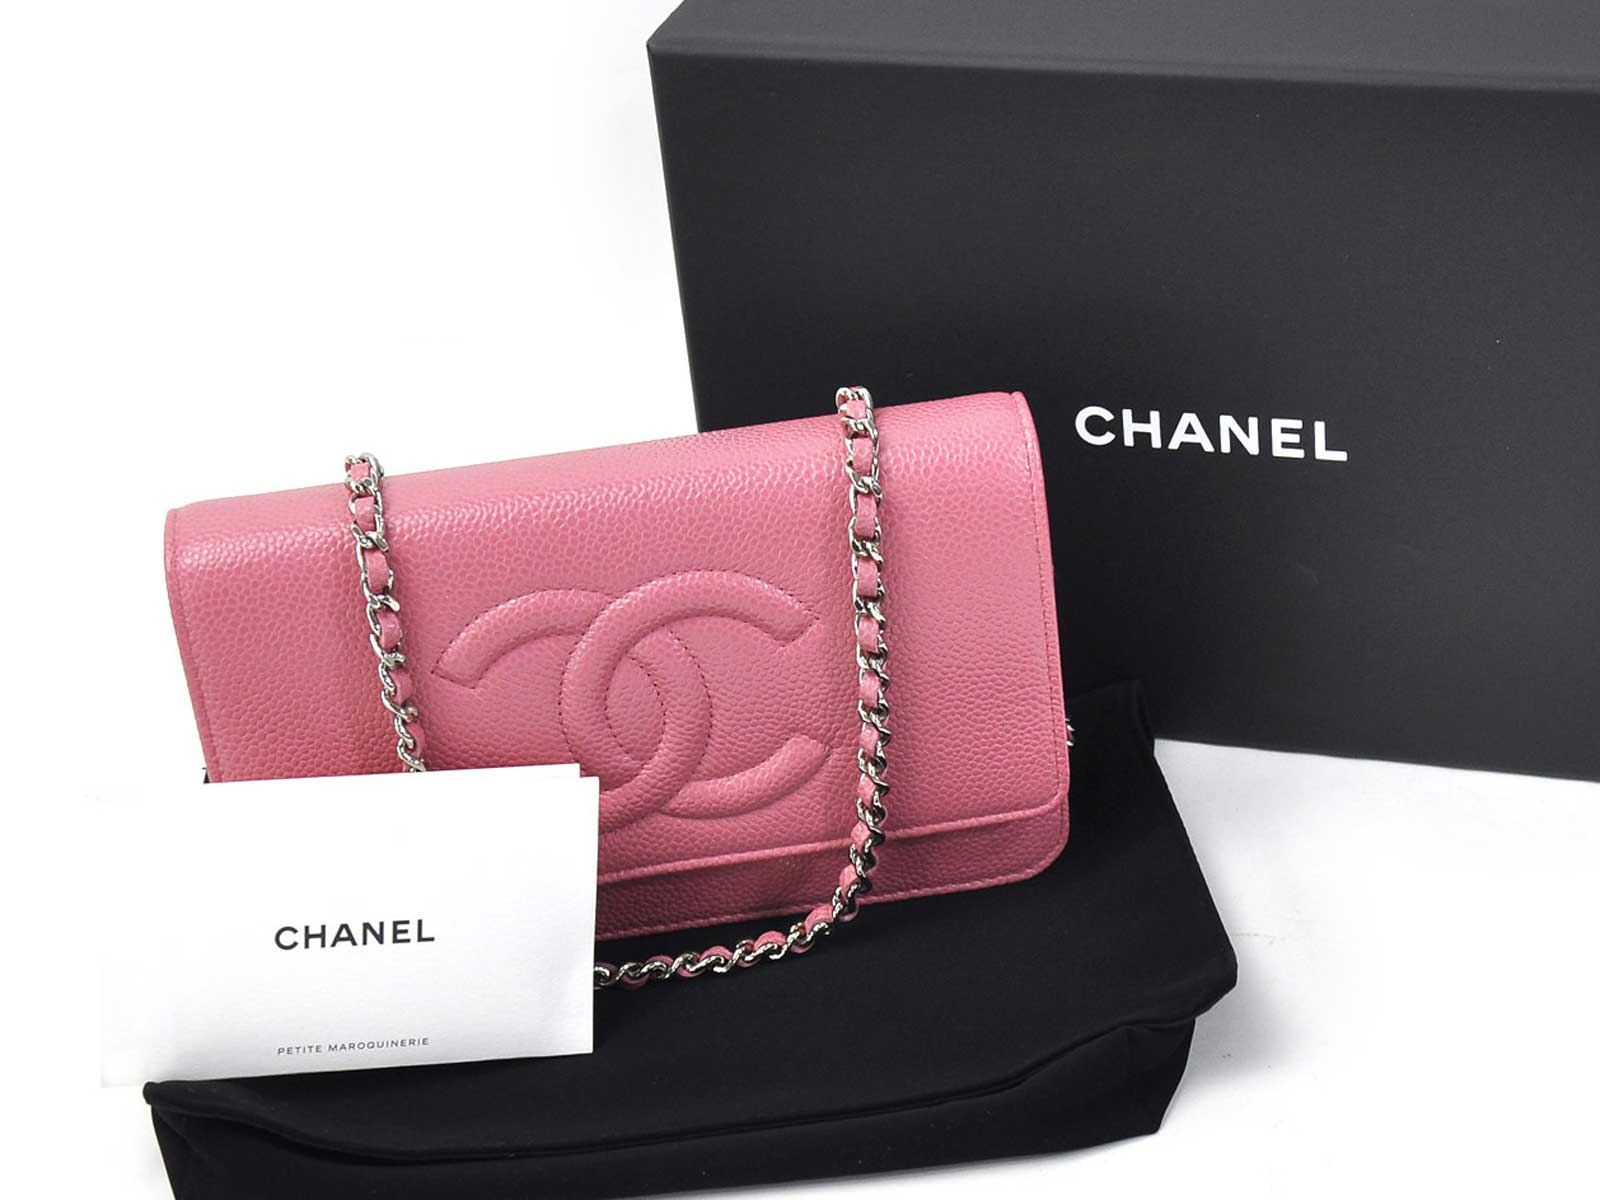 """chanel value chain The chanel reissue bags & classic flap bags are quite difference, yet so  beloved to many luxury lovers  chanel reissue bag chain details  and  arguably holds more """"instant recognition"""" value than the reissue closures."""